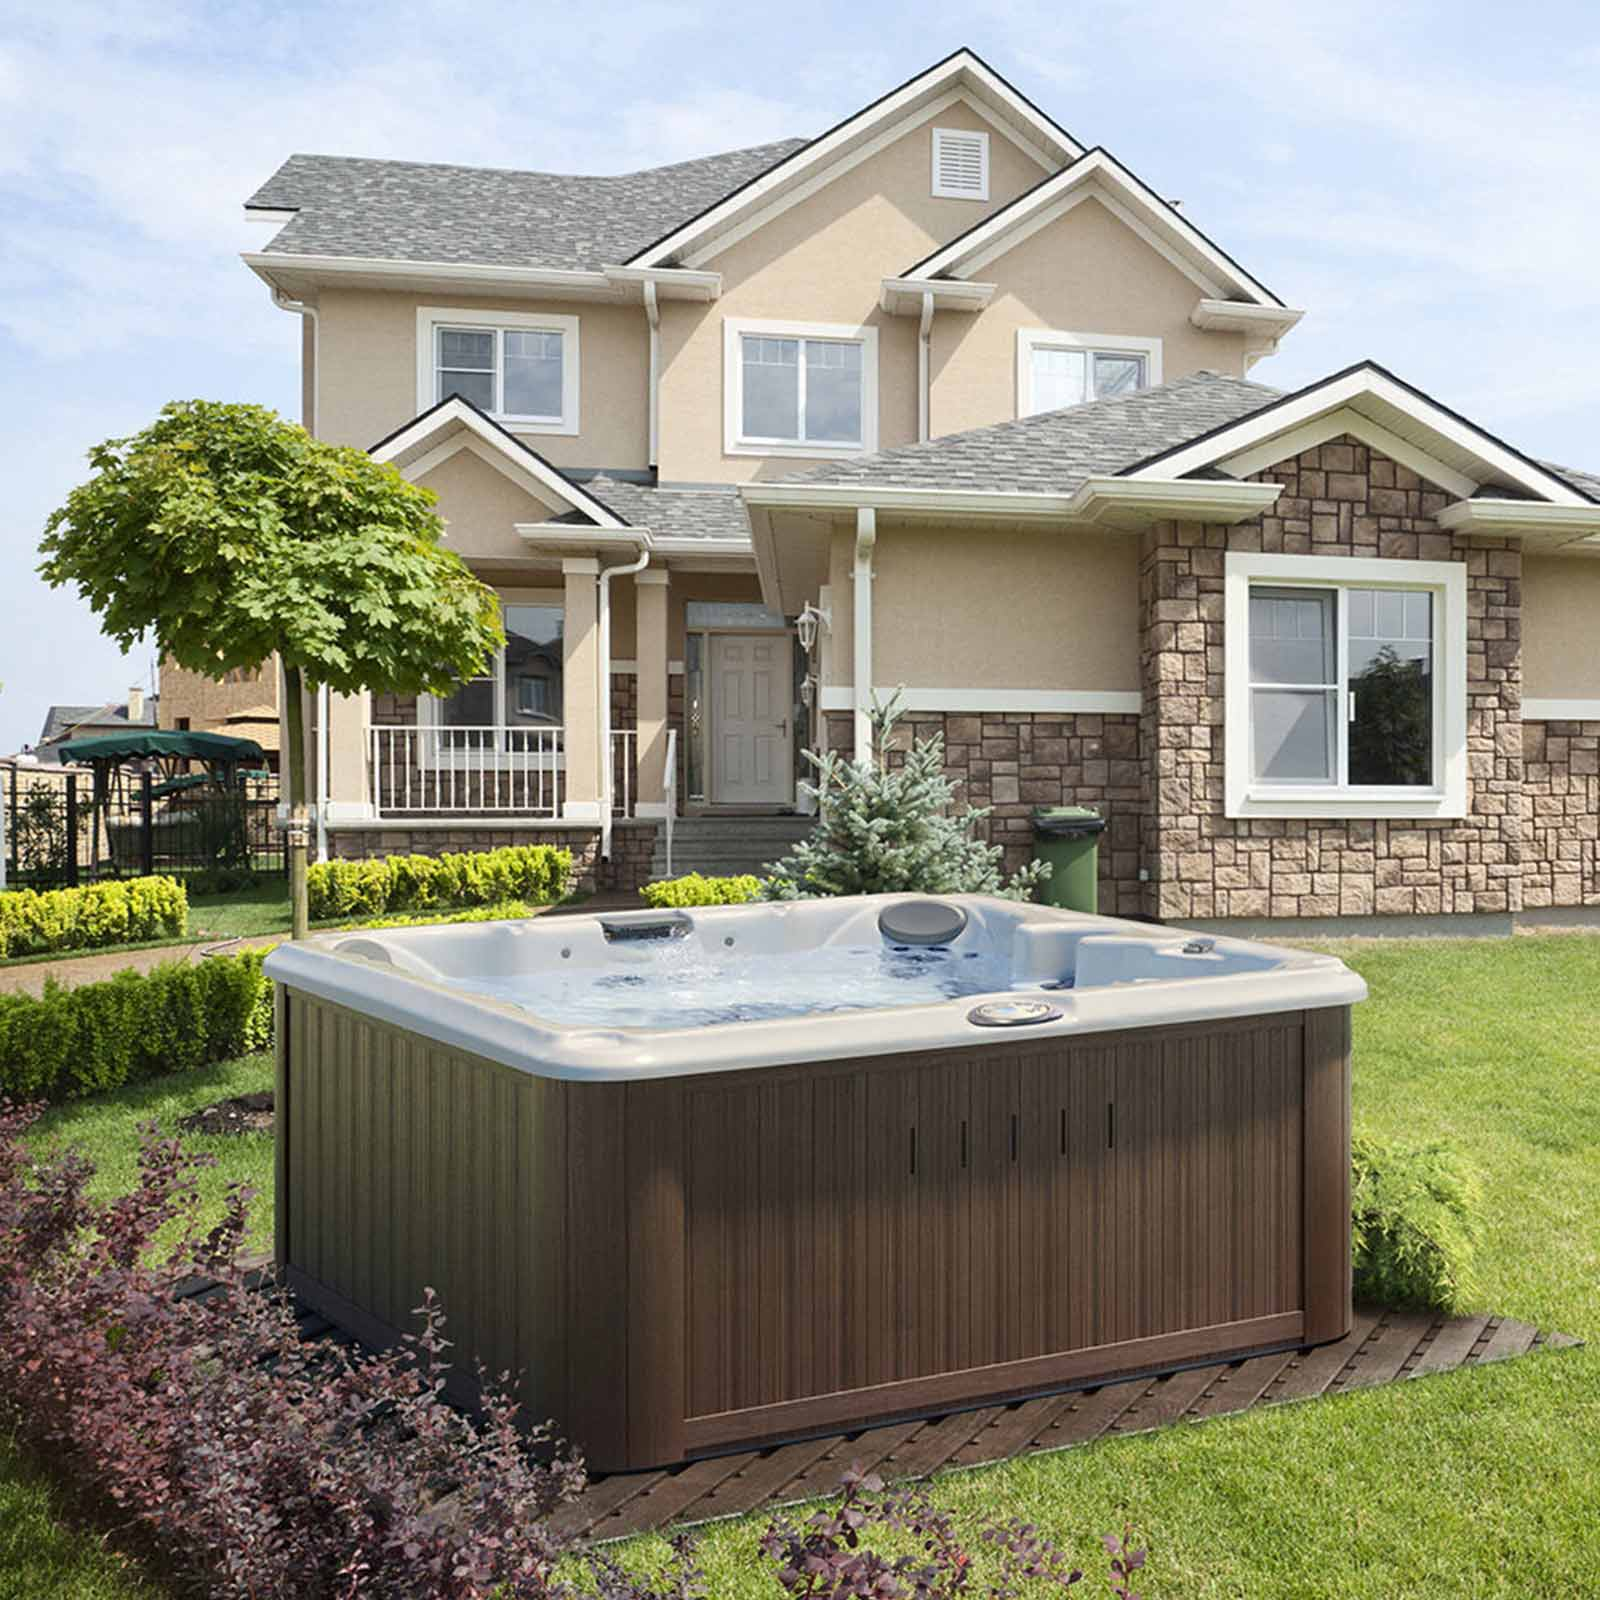 Best hot tub prices – Get the best hot tub prices online and in store through Hot Tubs Reno